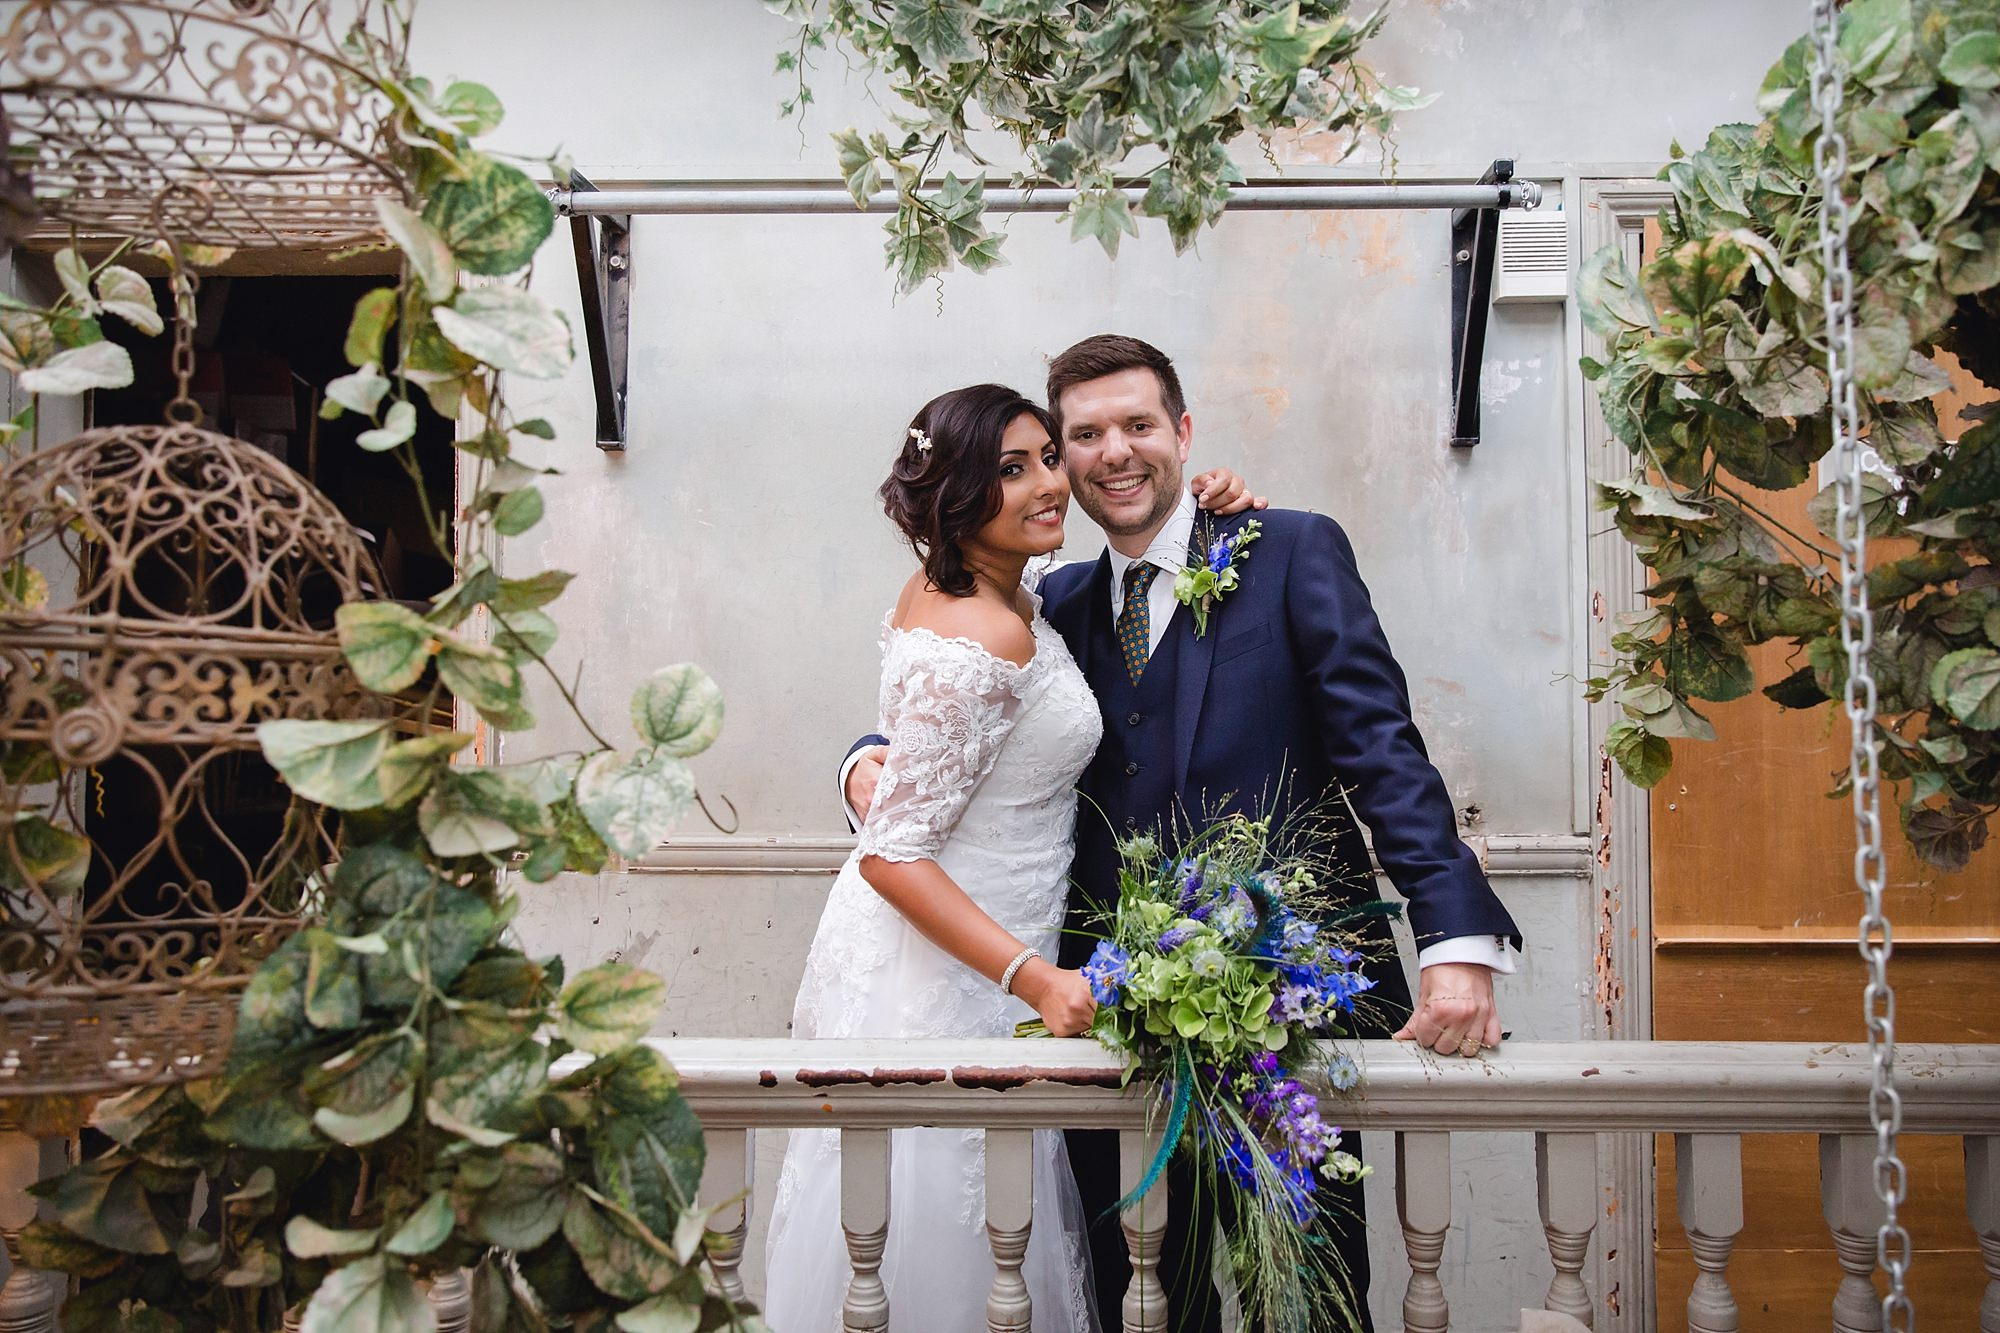 Paradise by way of Kensal Green wedding bride and groom together on balcony